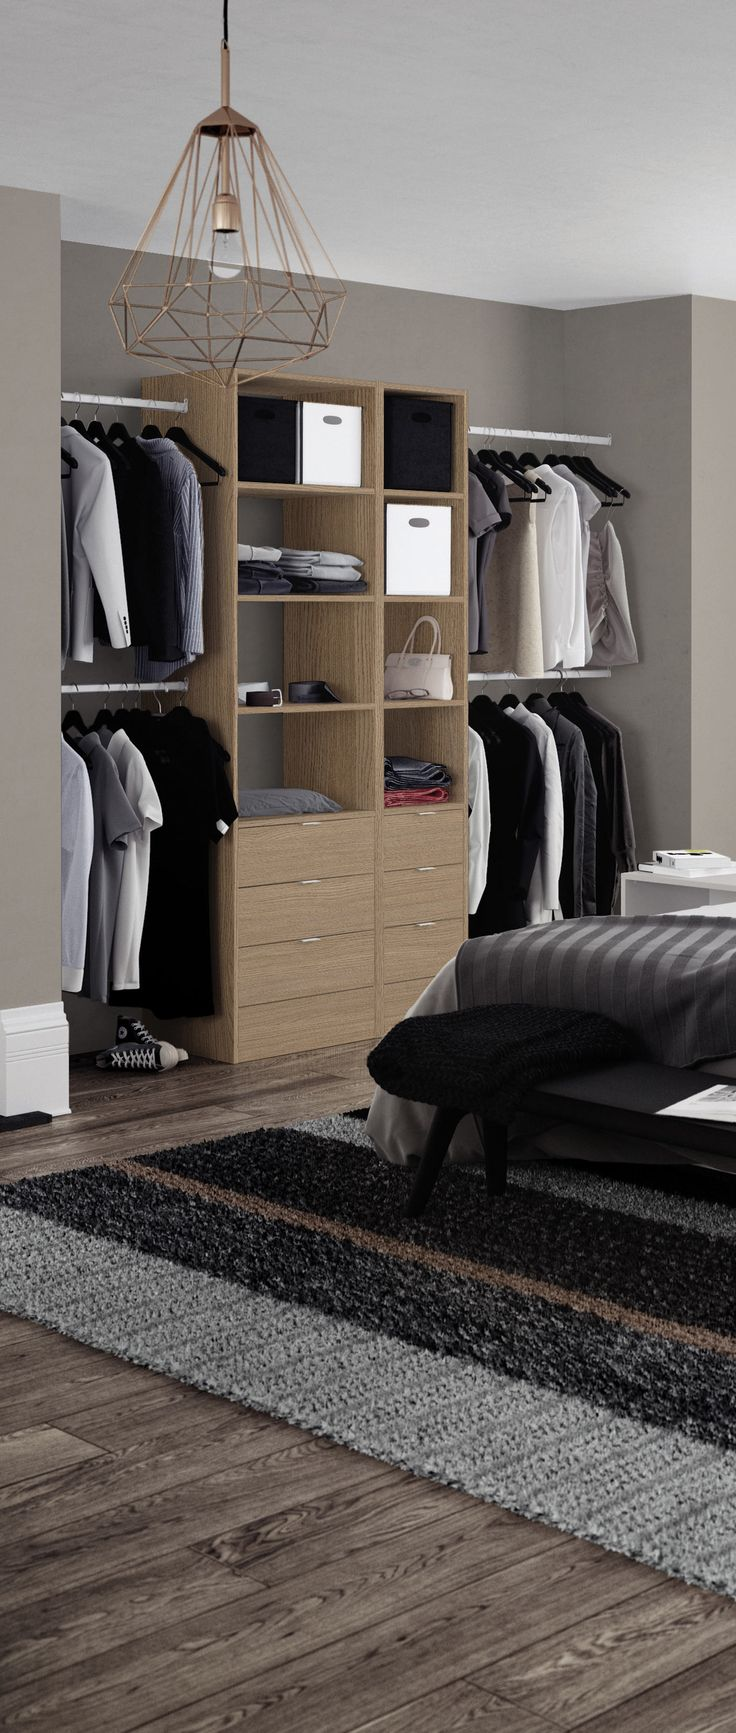 9 best bedroom storage images on pinterest bedroom storage our range of flexible wardrobe interior options will help you to make the most of your bedroom storage space